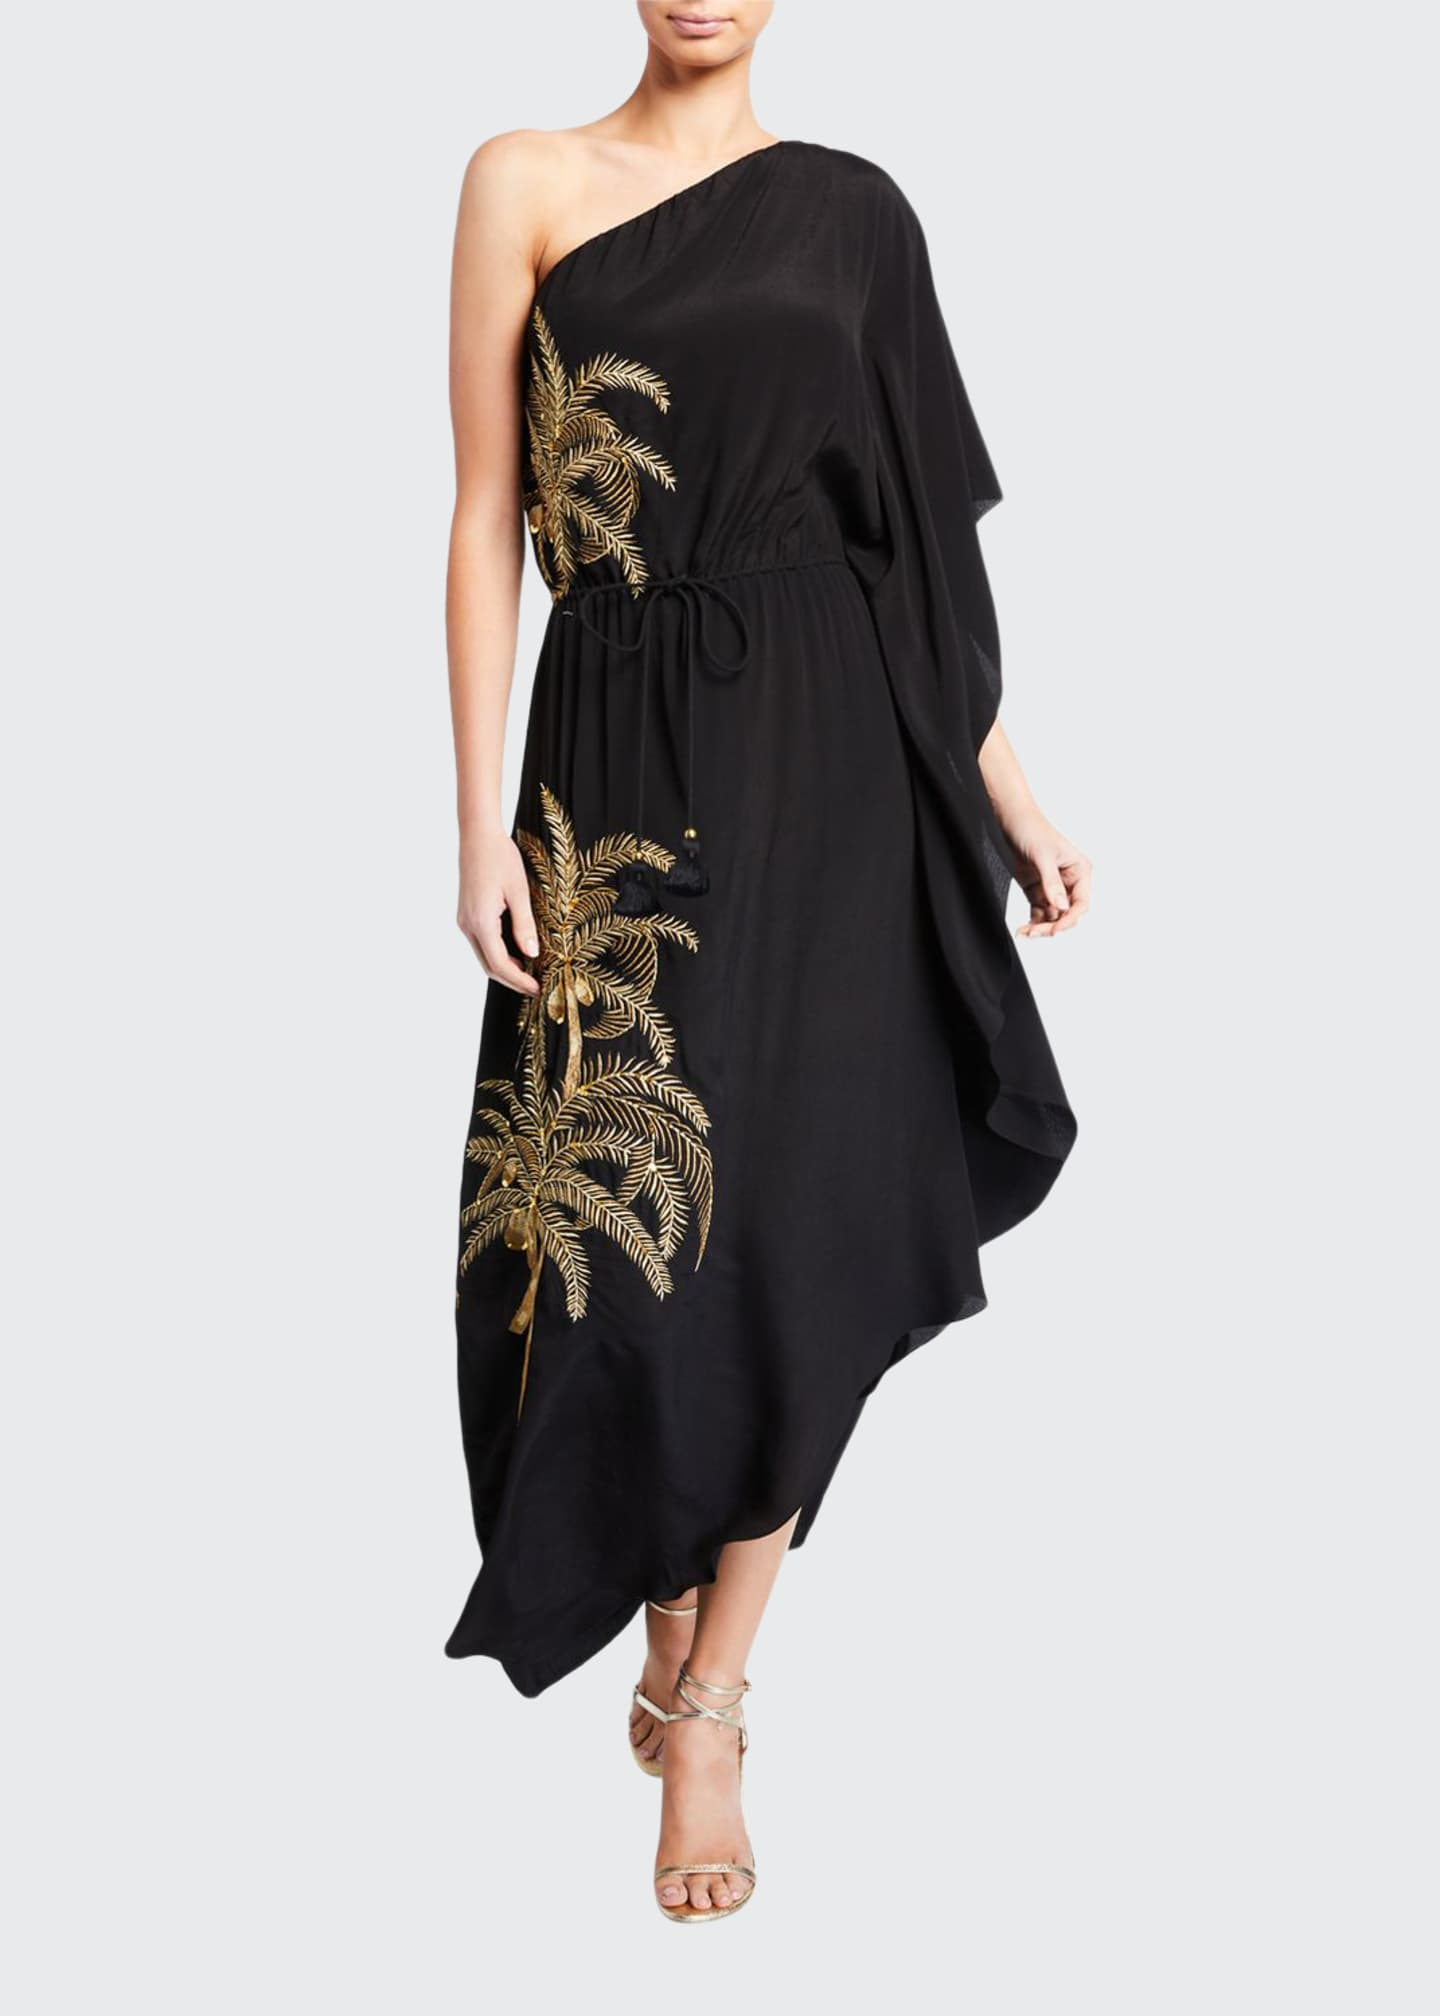 Figue Maisie One-Shoulder Palm-Embroidered Dress